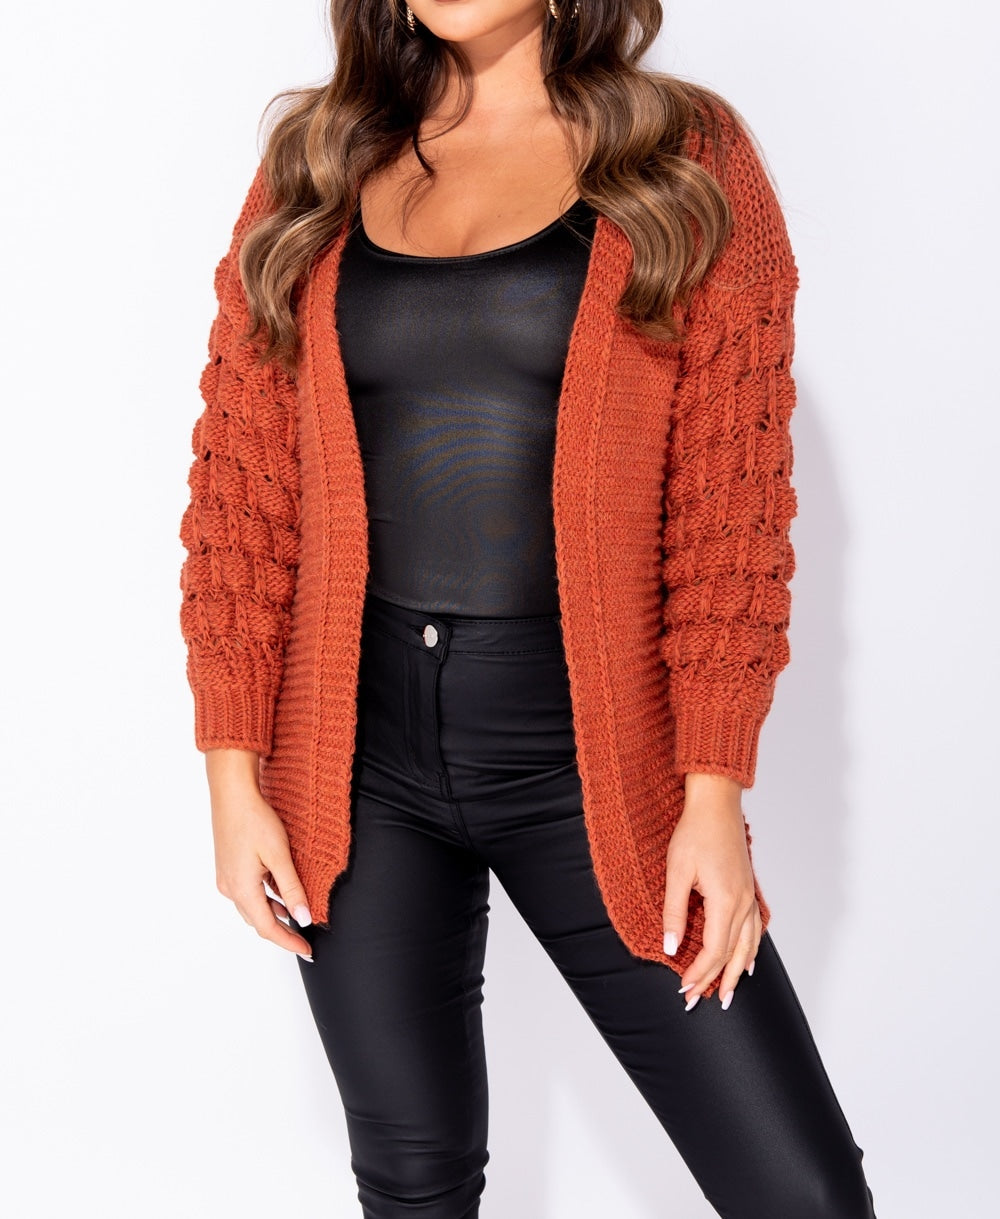 Bestseller!!! Rust Basket Weave Sleeve Edge To Edge Cardigan